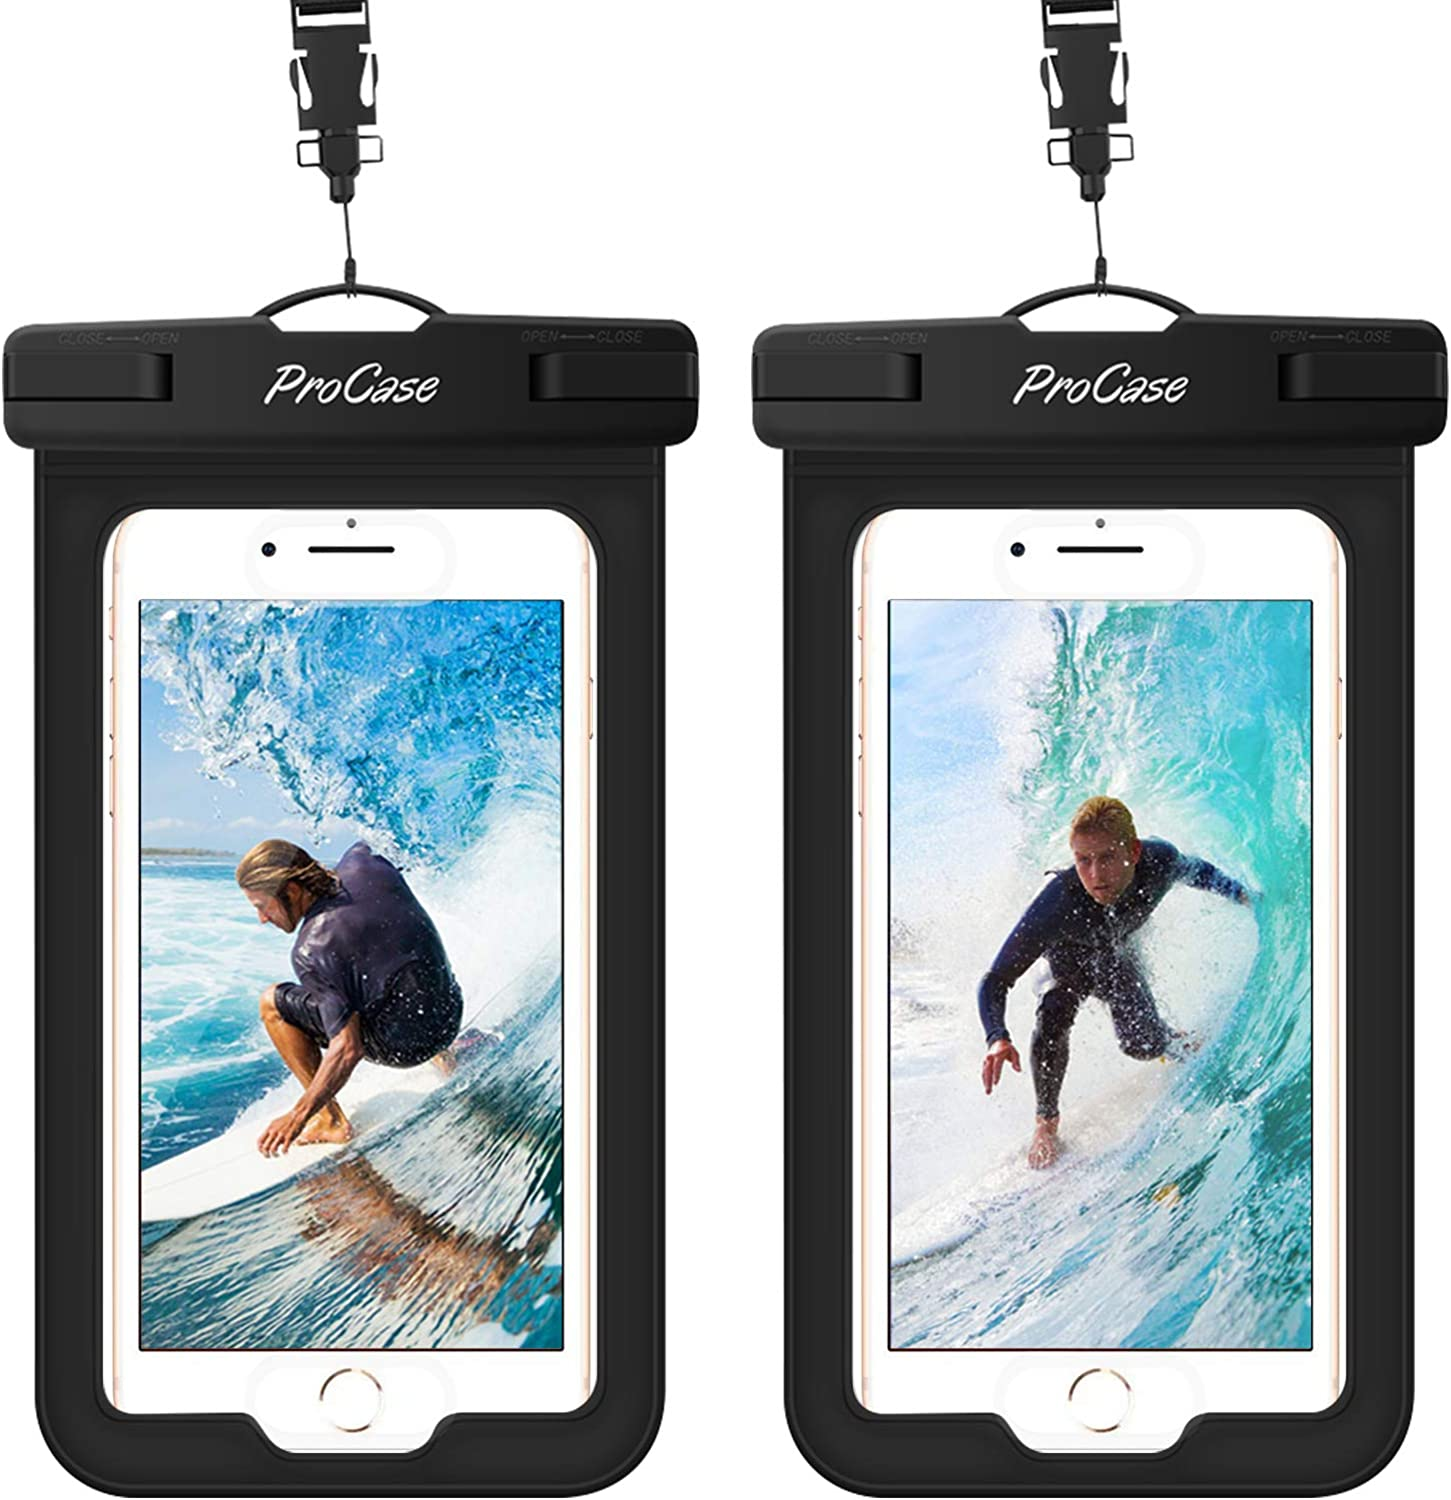 (2 Pack) ProCase Waterproof Phone Pouch Case with Touch ID up to 7